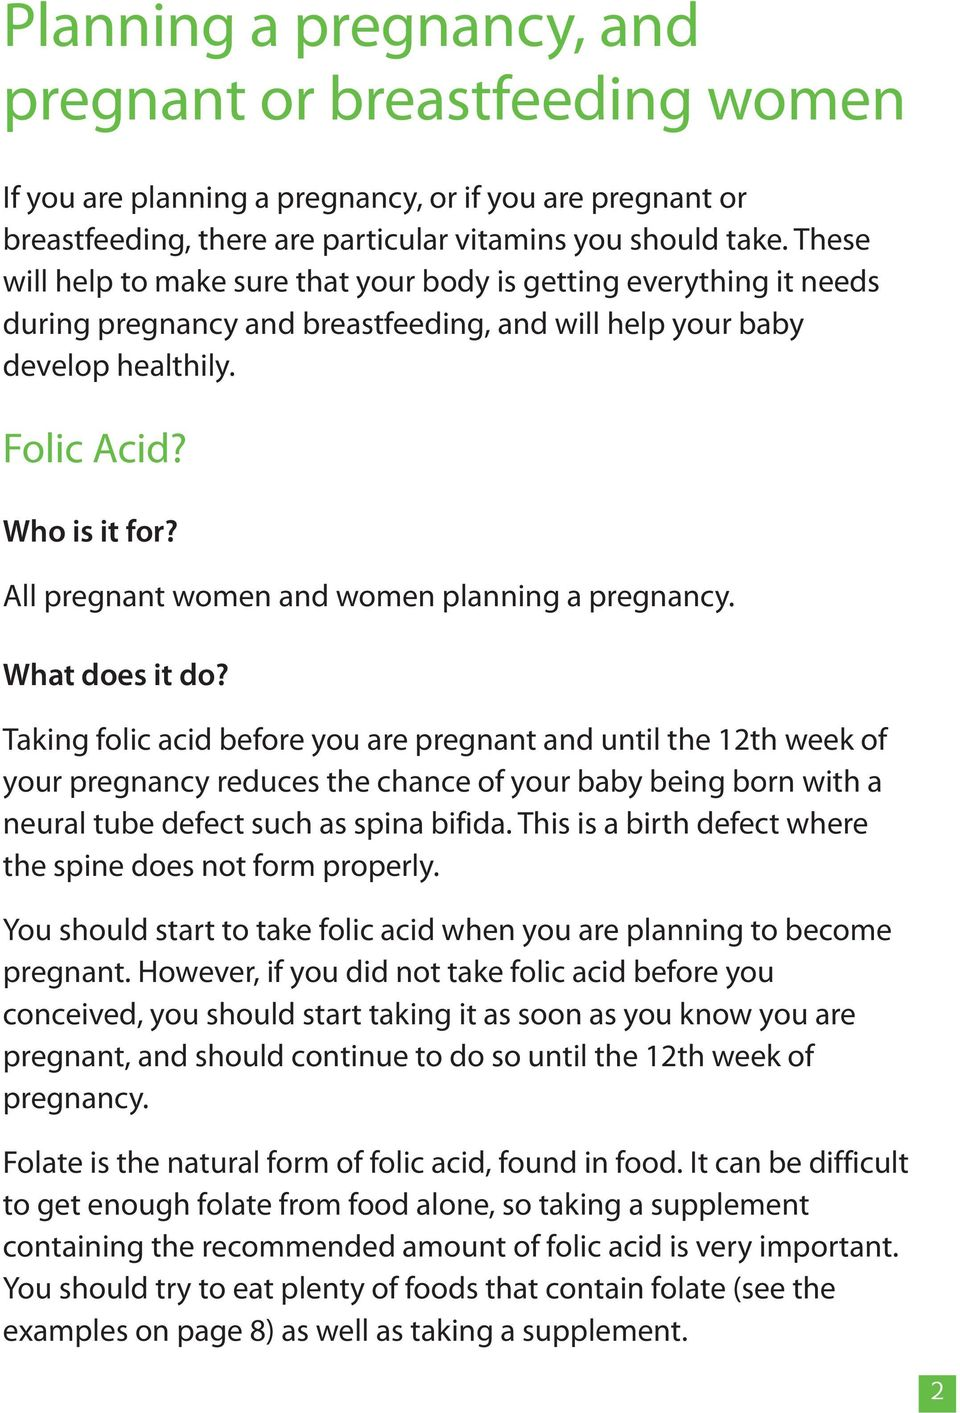 All pregnant women and women planning a pregnancy. What does it do?